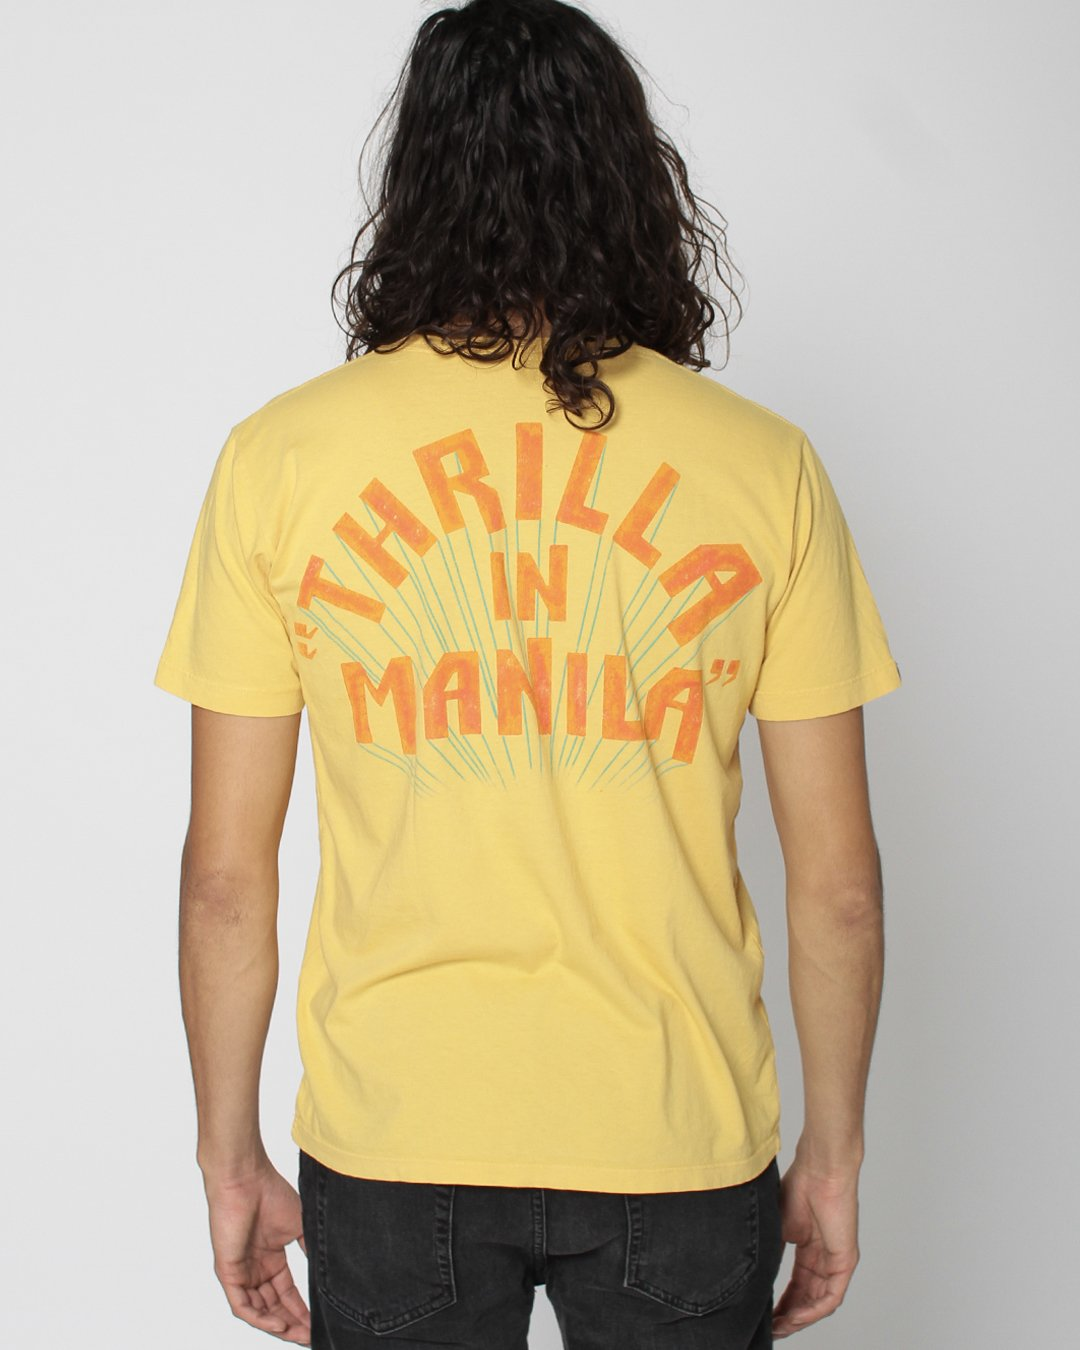 Ali-Frazier 'Fight of a Lifetime' Thrilla Tee